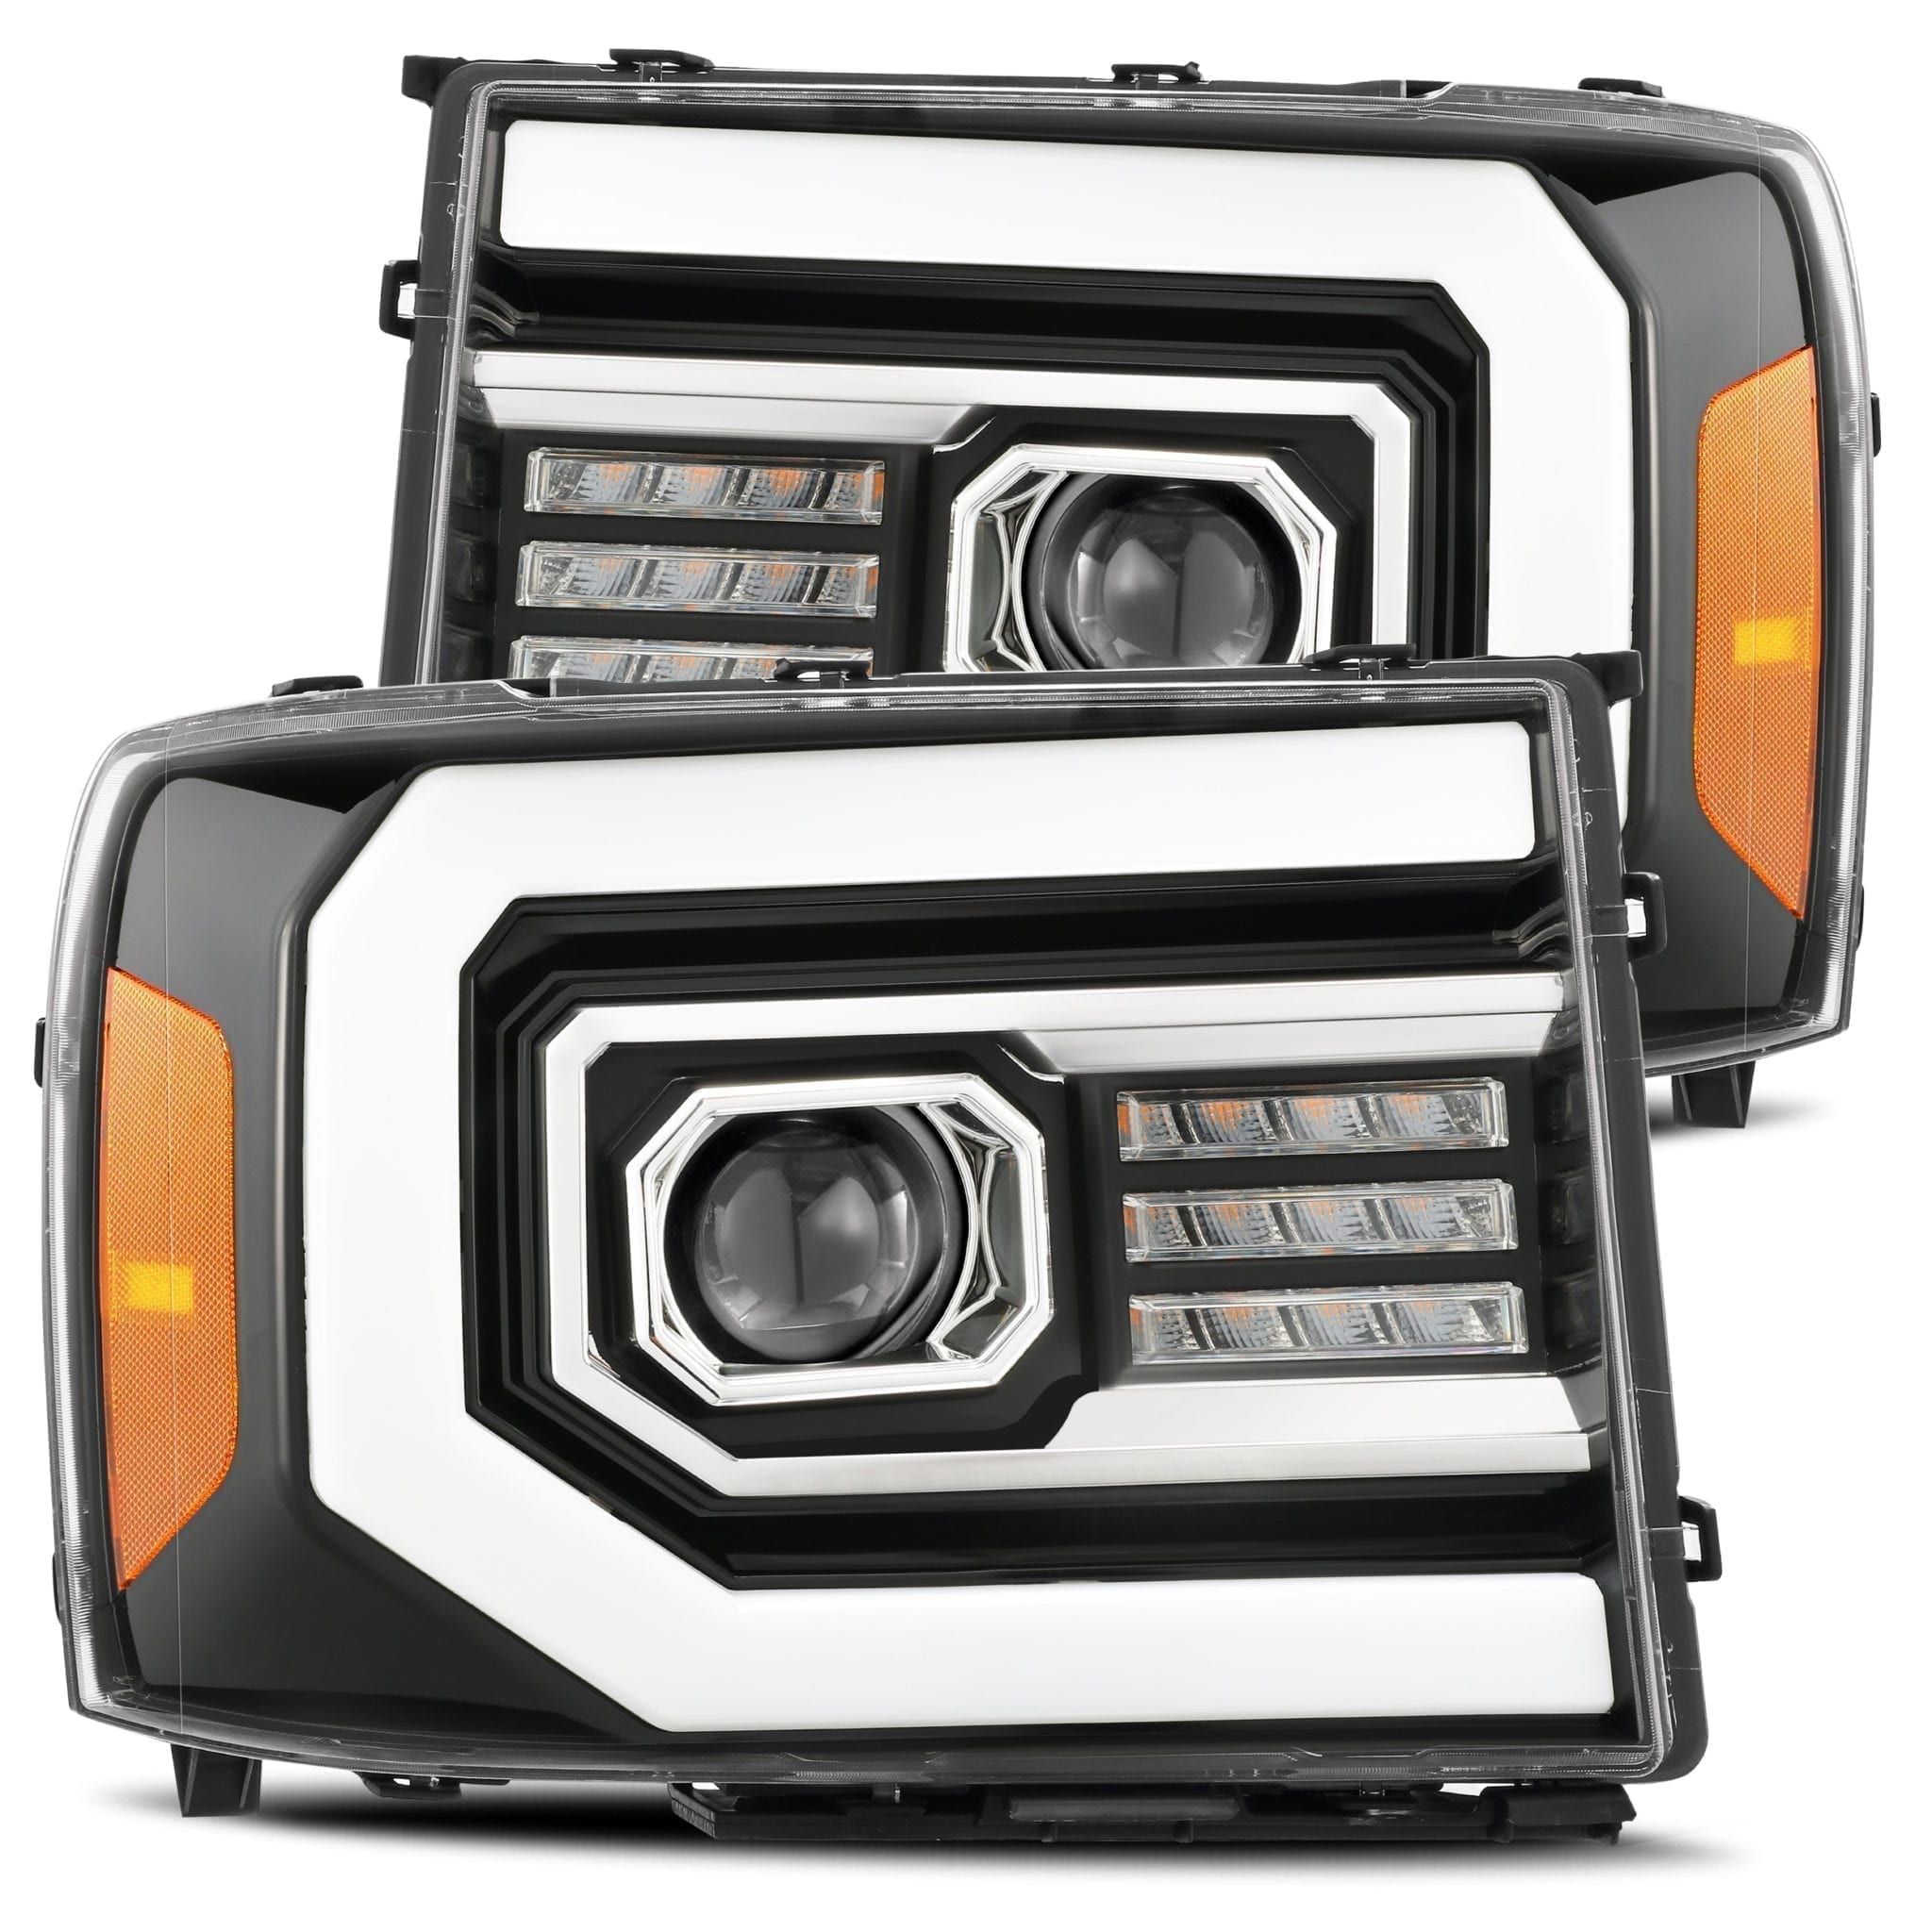 AlphaRex GMC Sierra 2007 2008 2009 2010 2011 2012 2013 PRO-Series Projector Headlights Jet Black